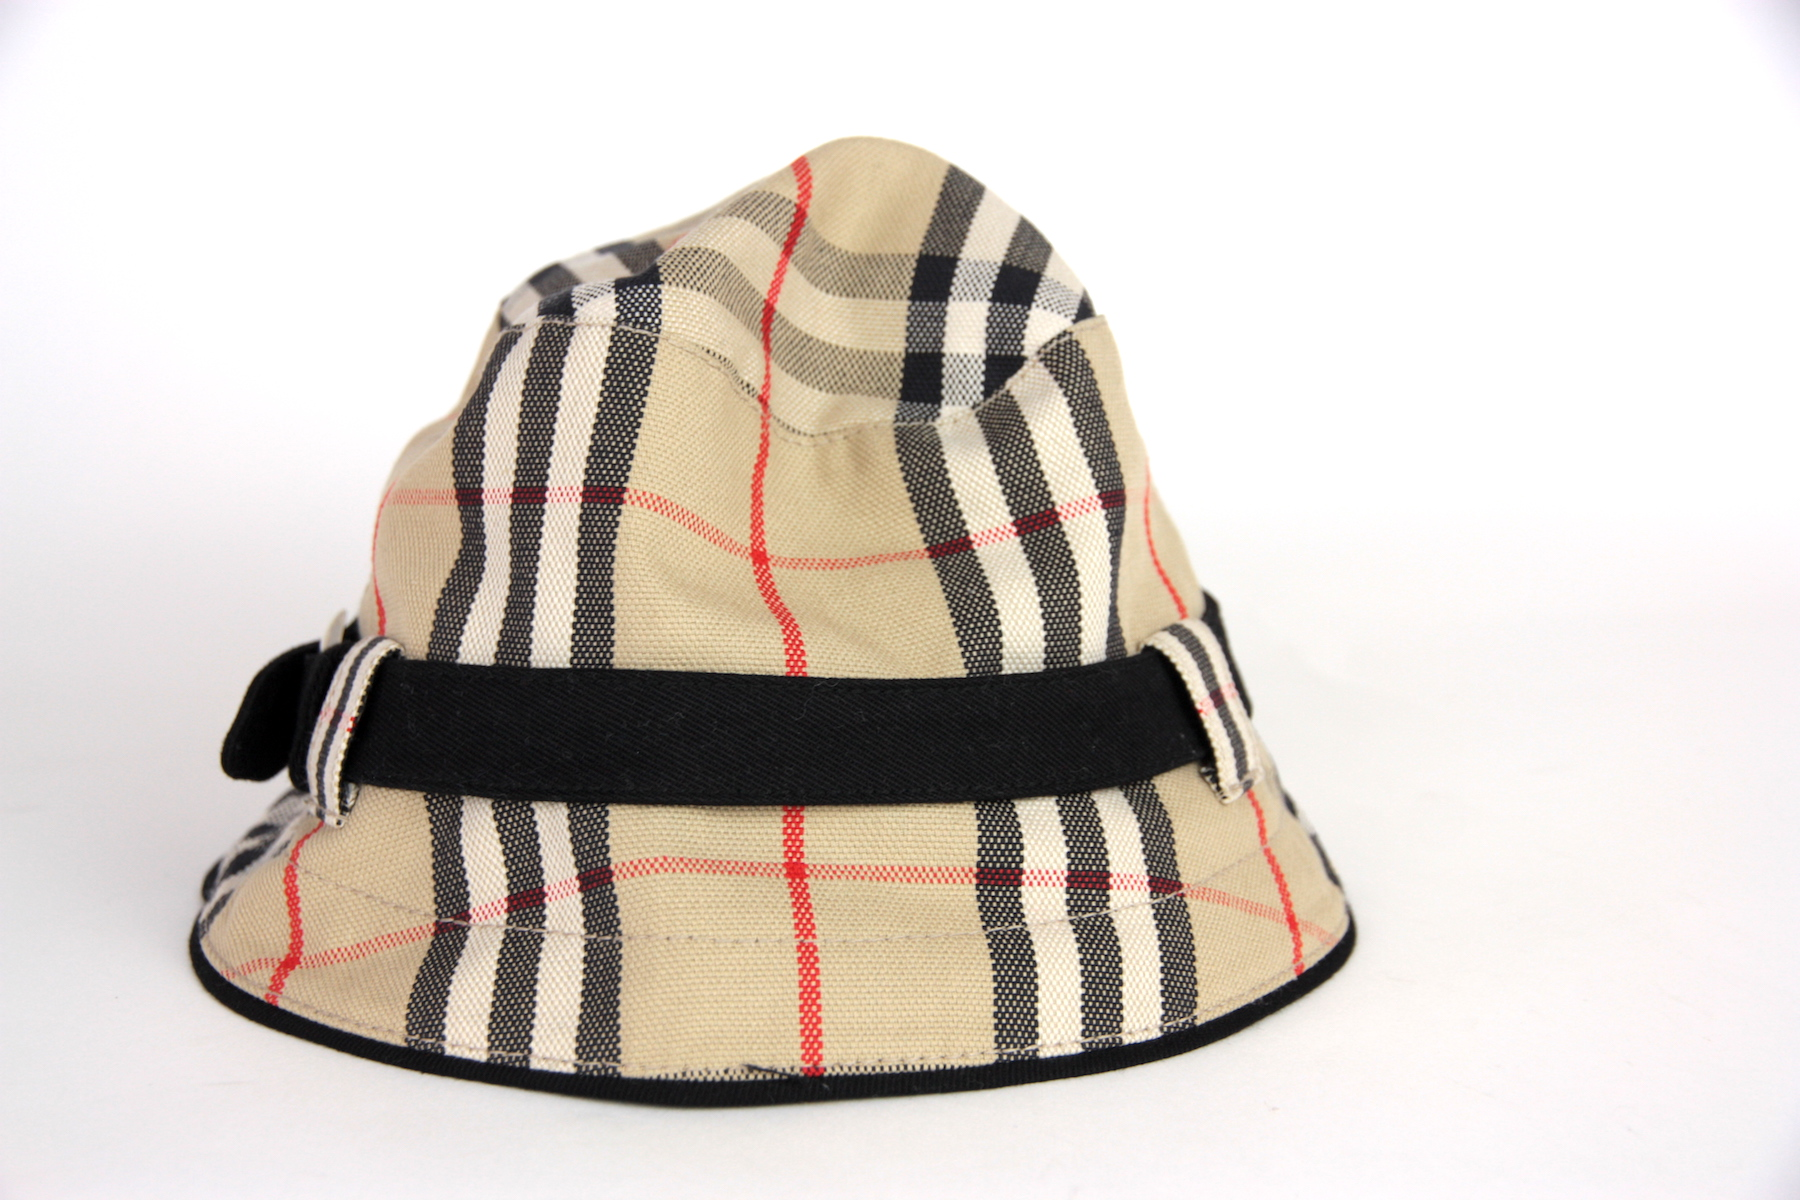 d568b46a216 Burberry London Nova Check Bucket Canvas Hat S – Fashion Reloved